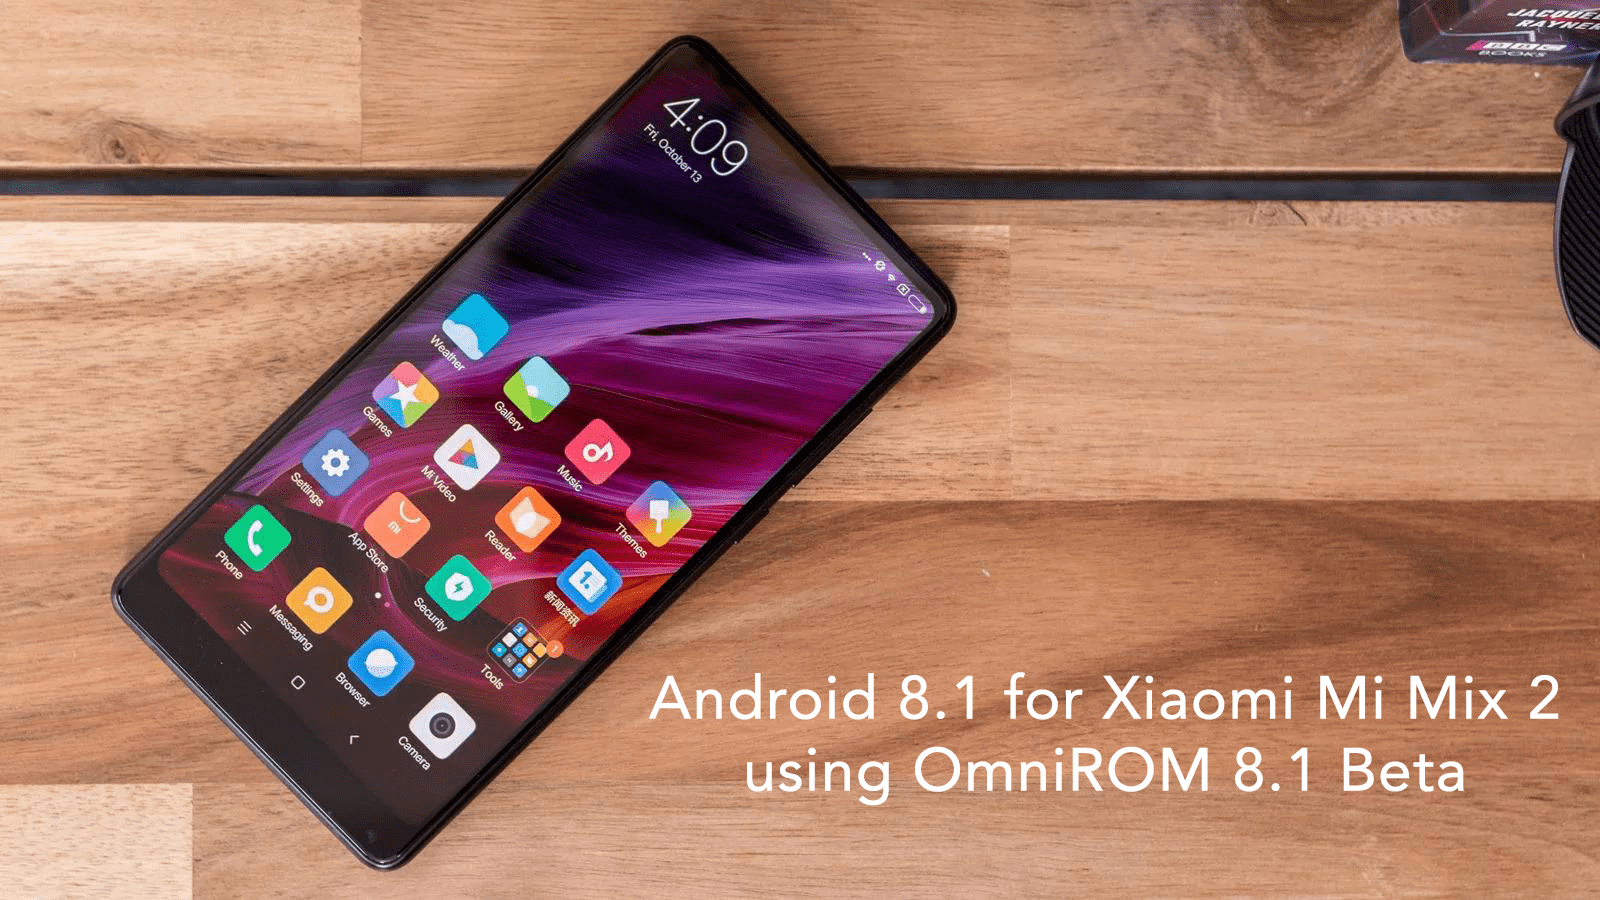 Download Android Oreo 8 1 For Xioami Mi Mix 2 Using Omnirom 8 1